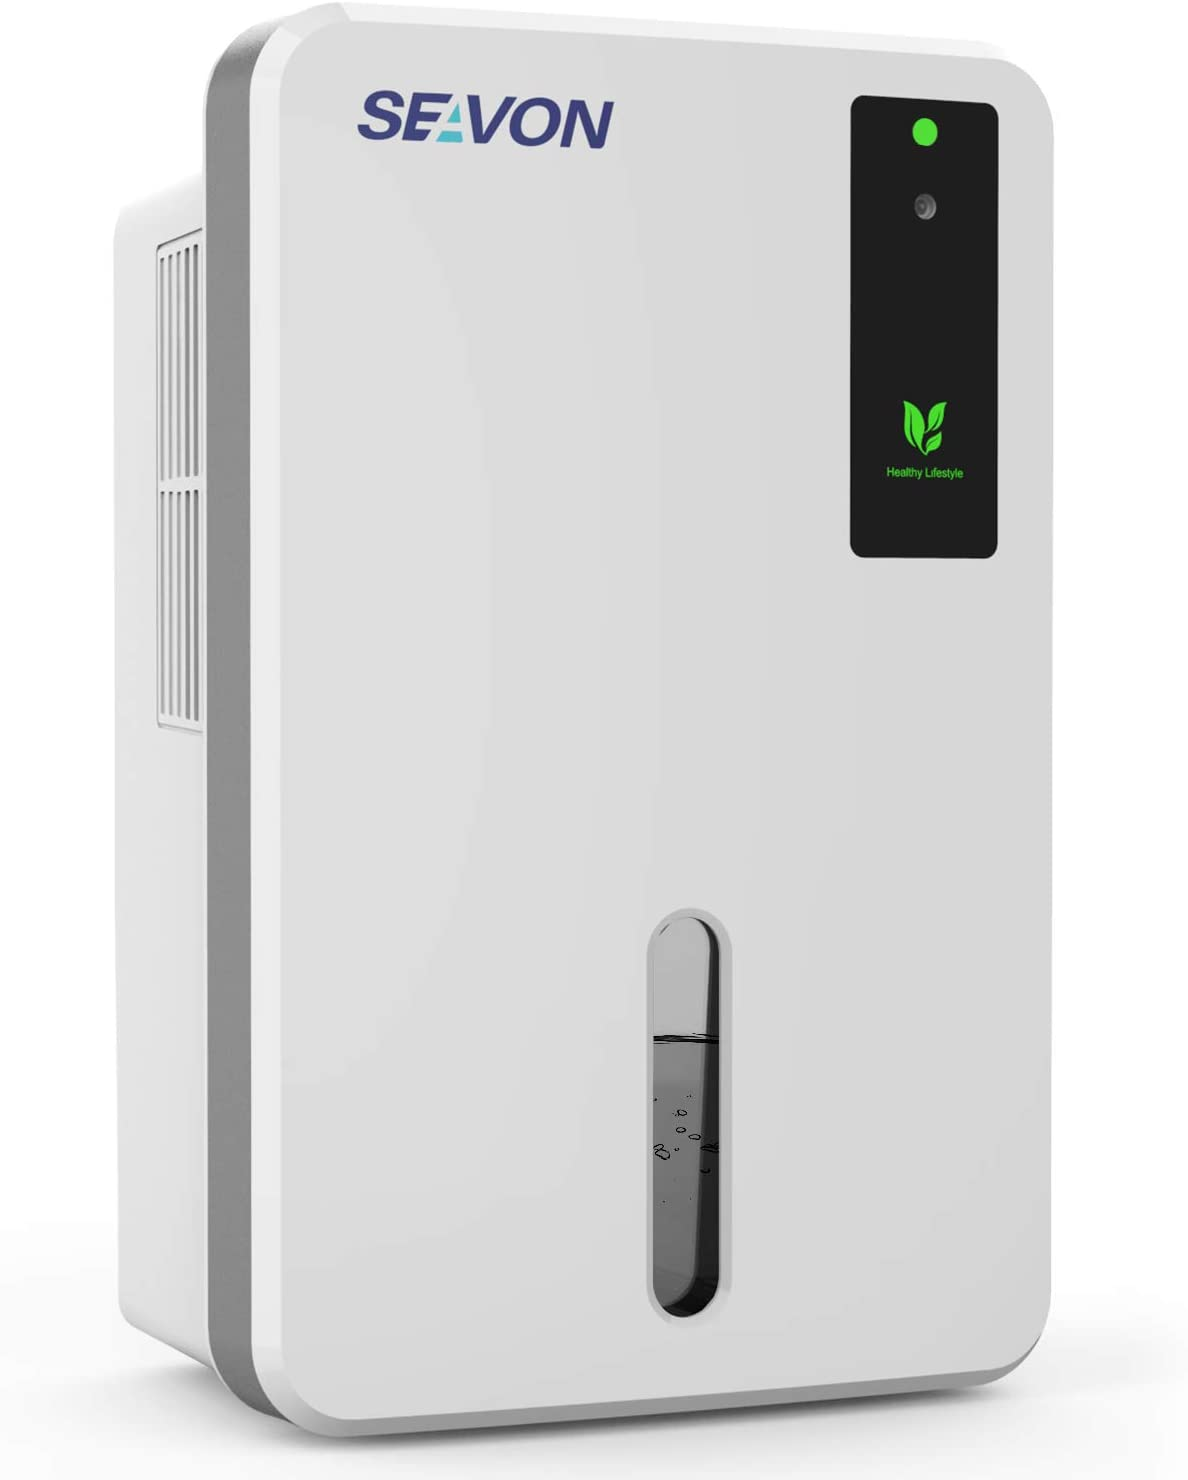 SEAVON Upgraded Dehumidifier for 2500 Cubic Feet(280 sq ft), 50oz(1500ml) Capacity, Portable, Compact and Quiet Dehumidifiers for Home, Basements, Bedroom, Bathroom, Garage, RV with Auto Shut Off.